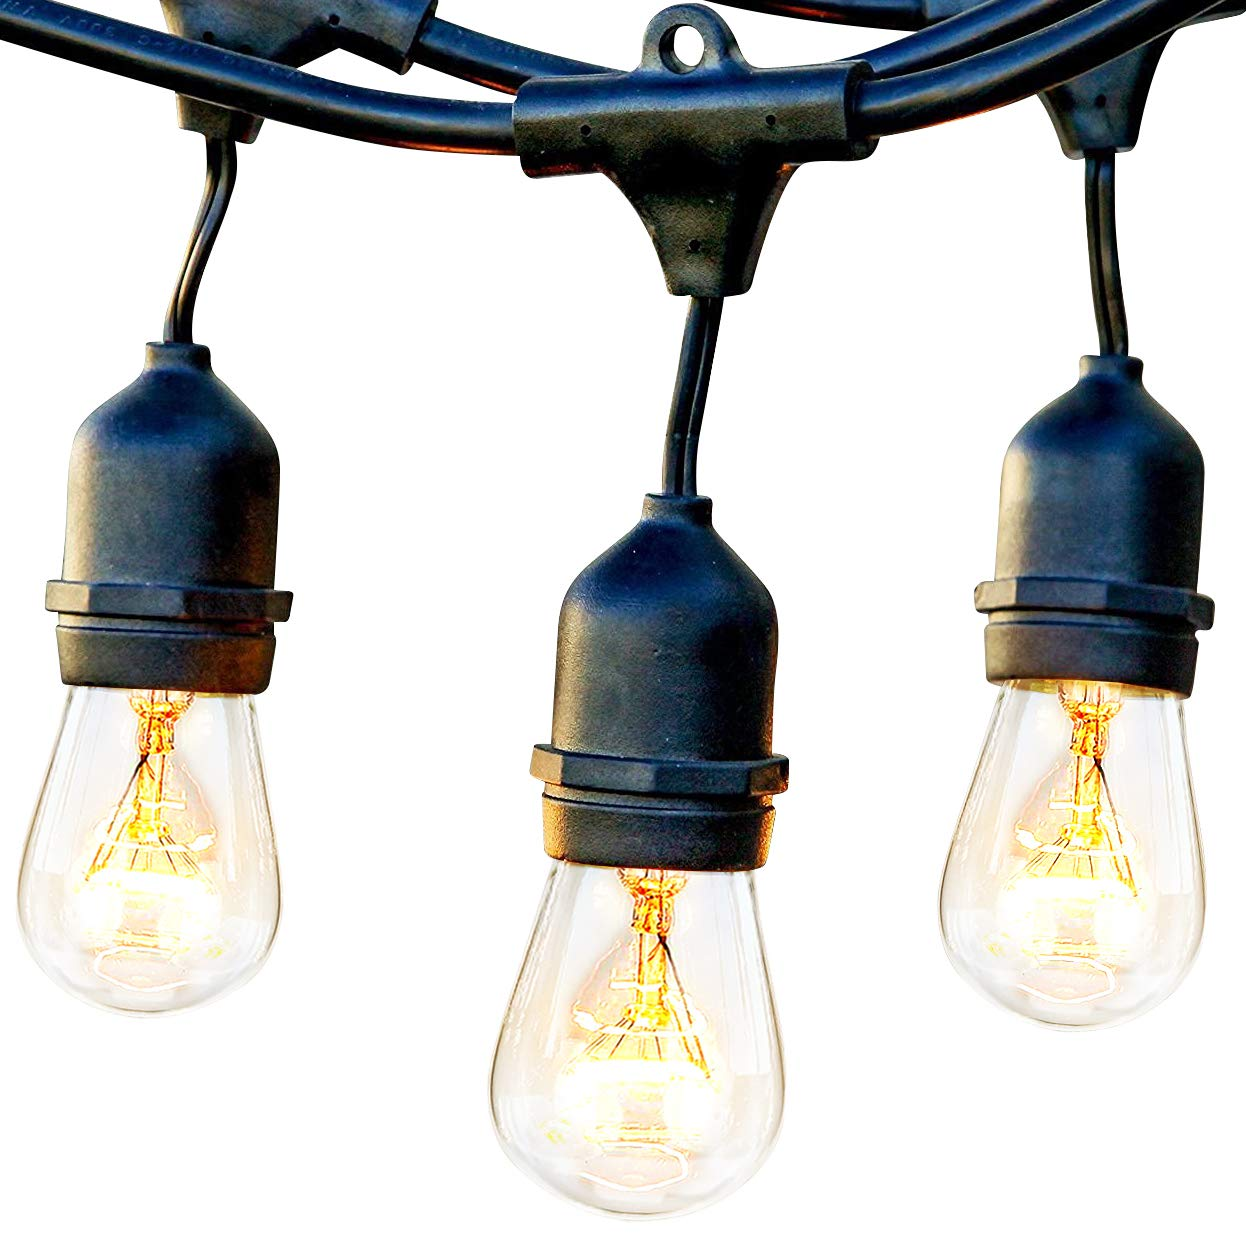 9d00f245445 Brightech Ambience Pro - Waterproof Outdoor String Lights - Hanging Vintage  11W Edison Bulbs - 48 Ft Bistro Lights Create Great Ambience in Your  Backyard